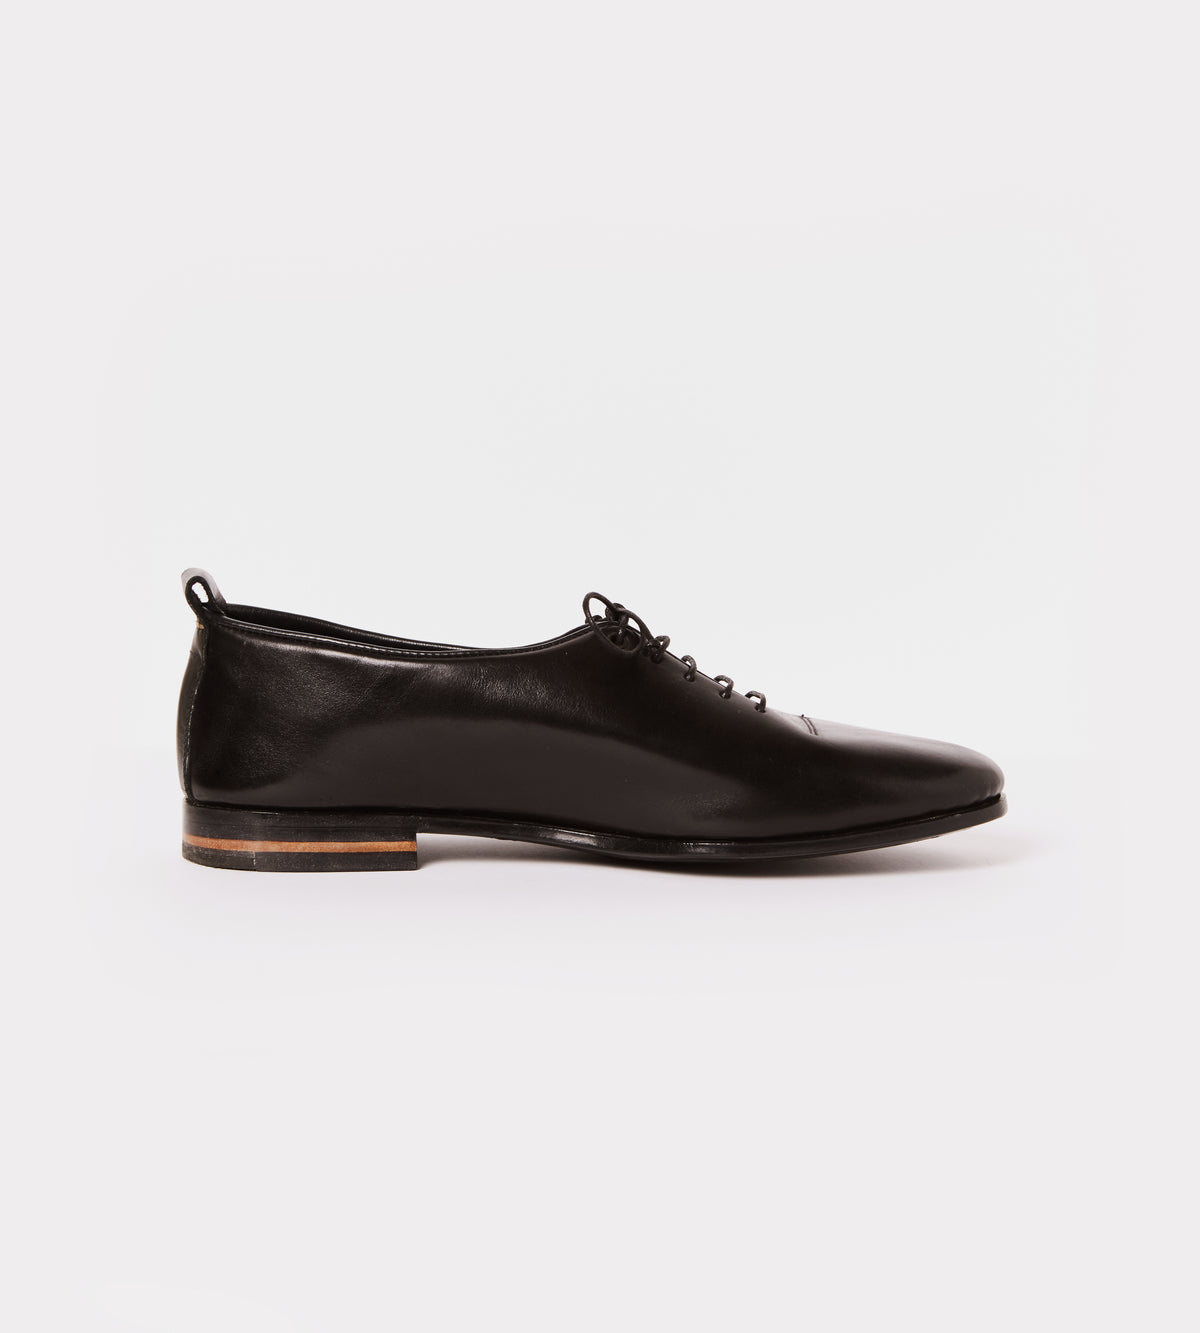 Black calf leather wholecut soft shoe inside view